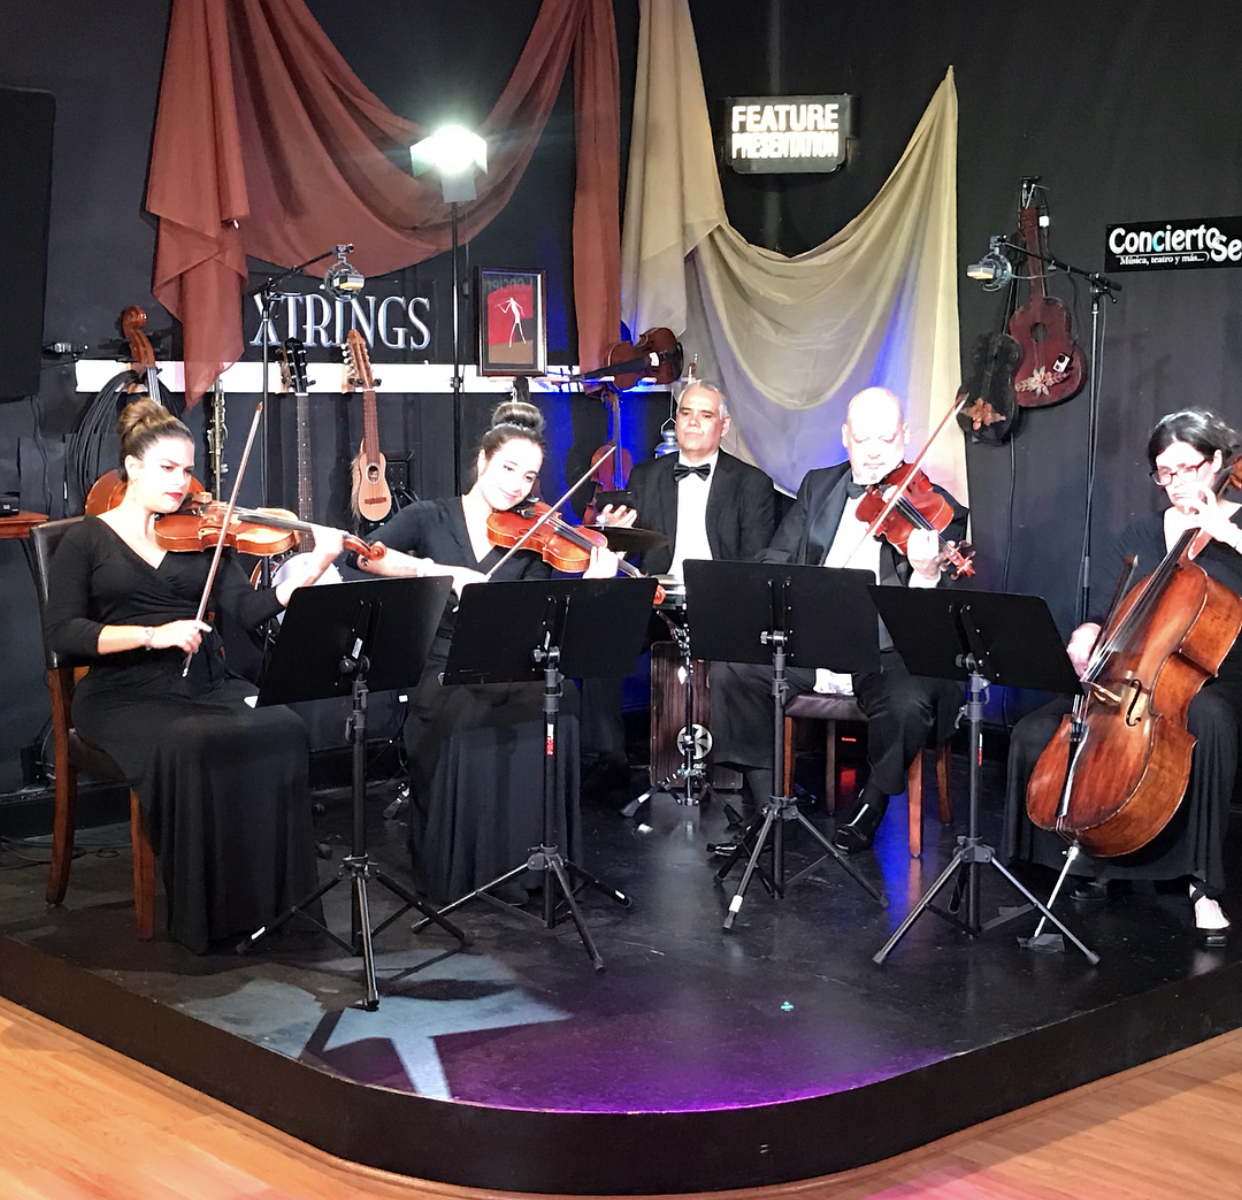 Strings and percussion quintet